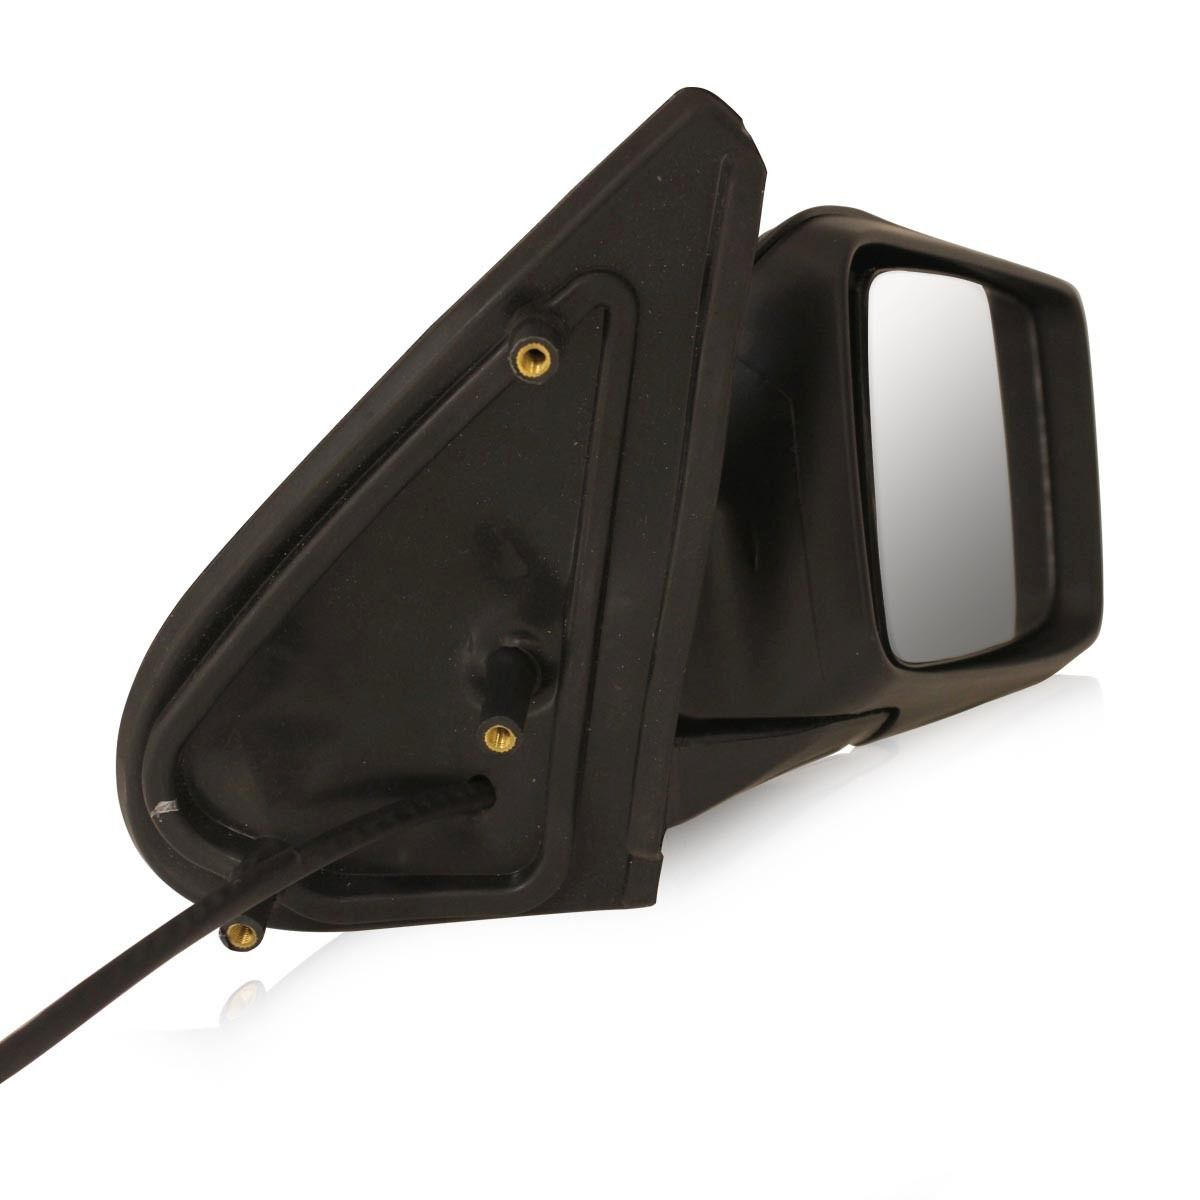 retrovisor golf alemao mexicano 93 94 95 96 97 98 regulagem manual